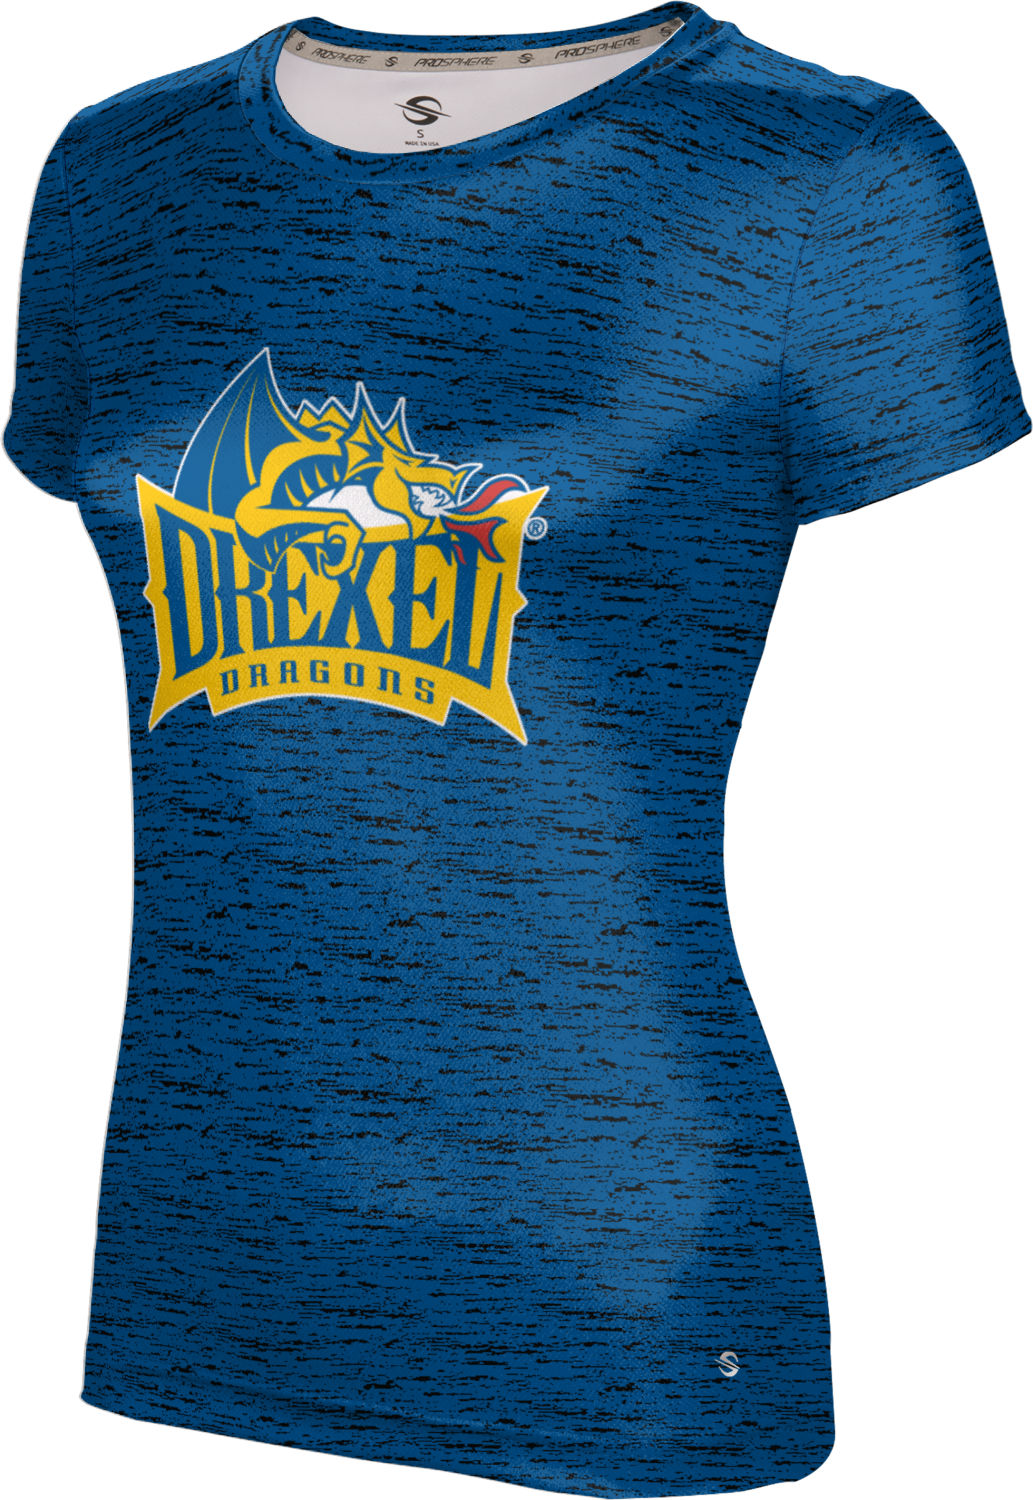 Brushed ProSphere Drexel University Girls Performance T-Shirt